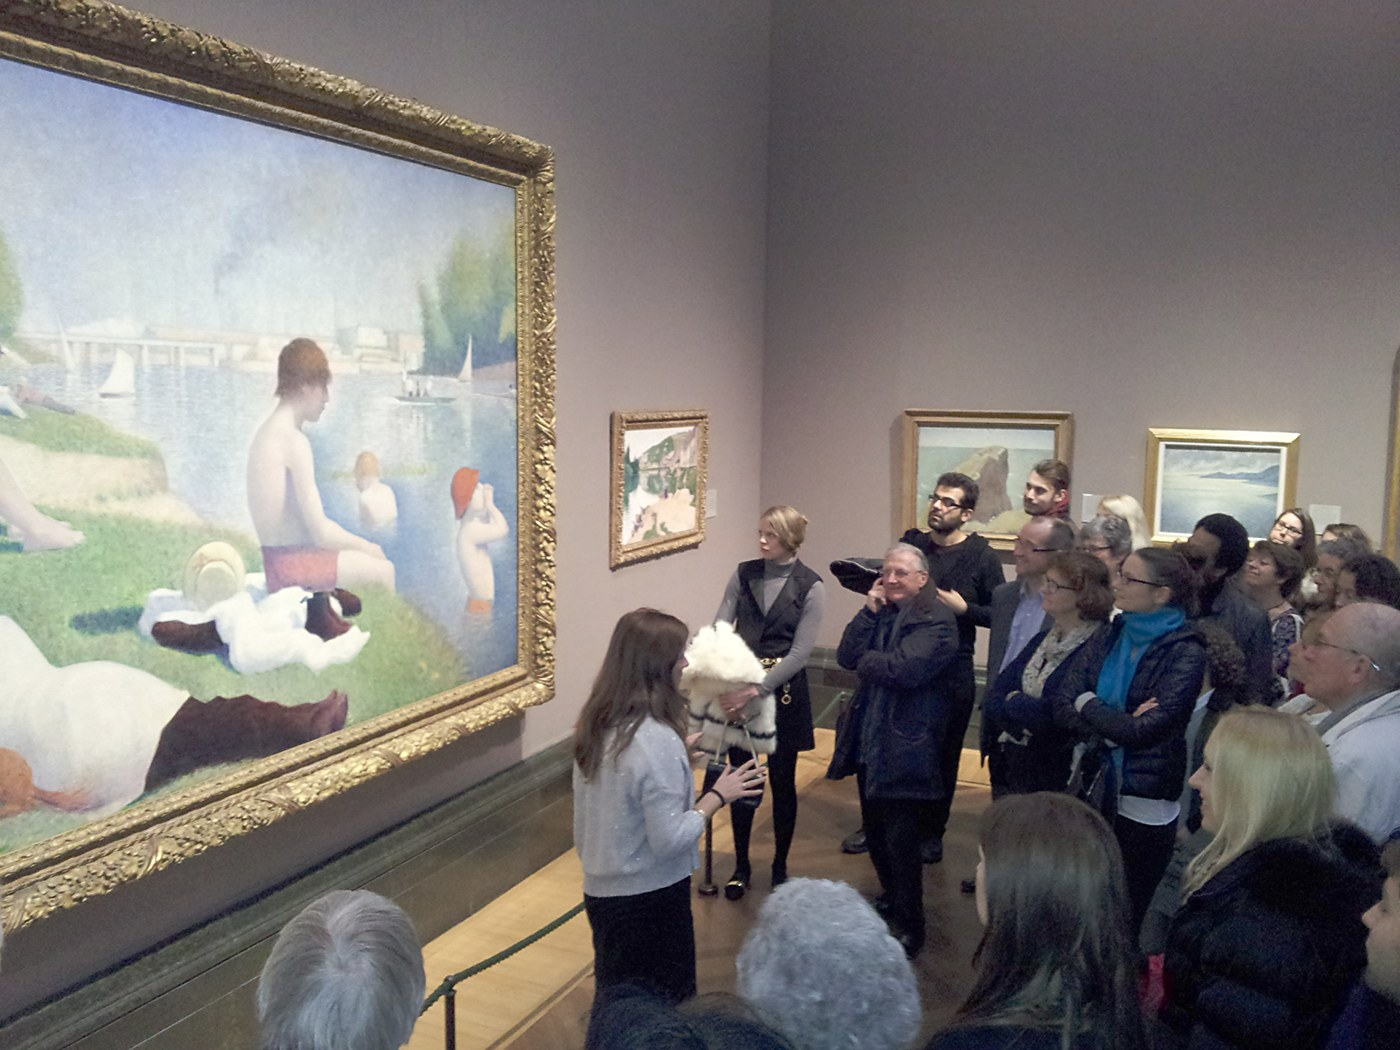 Touring the National Gallery